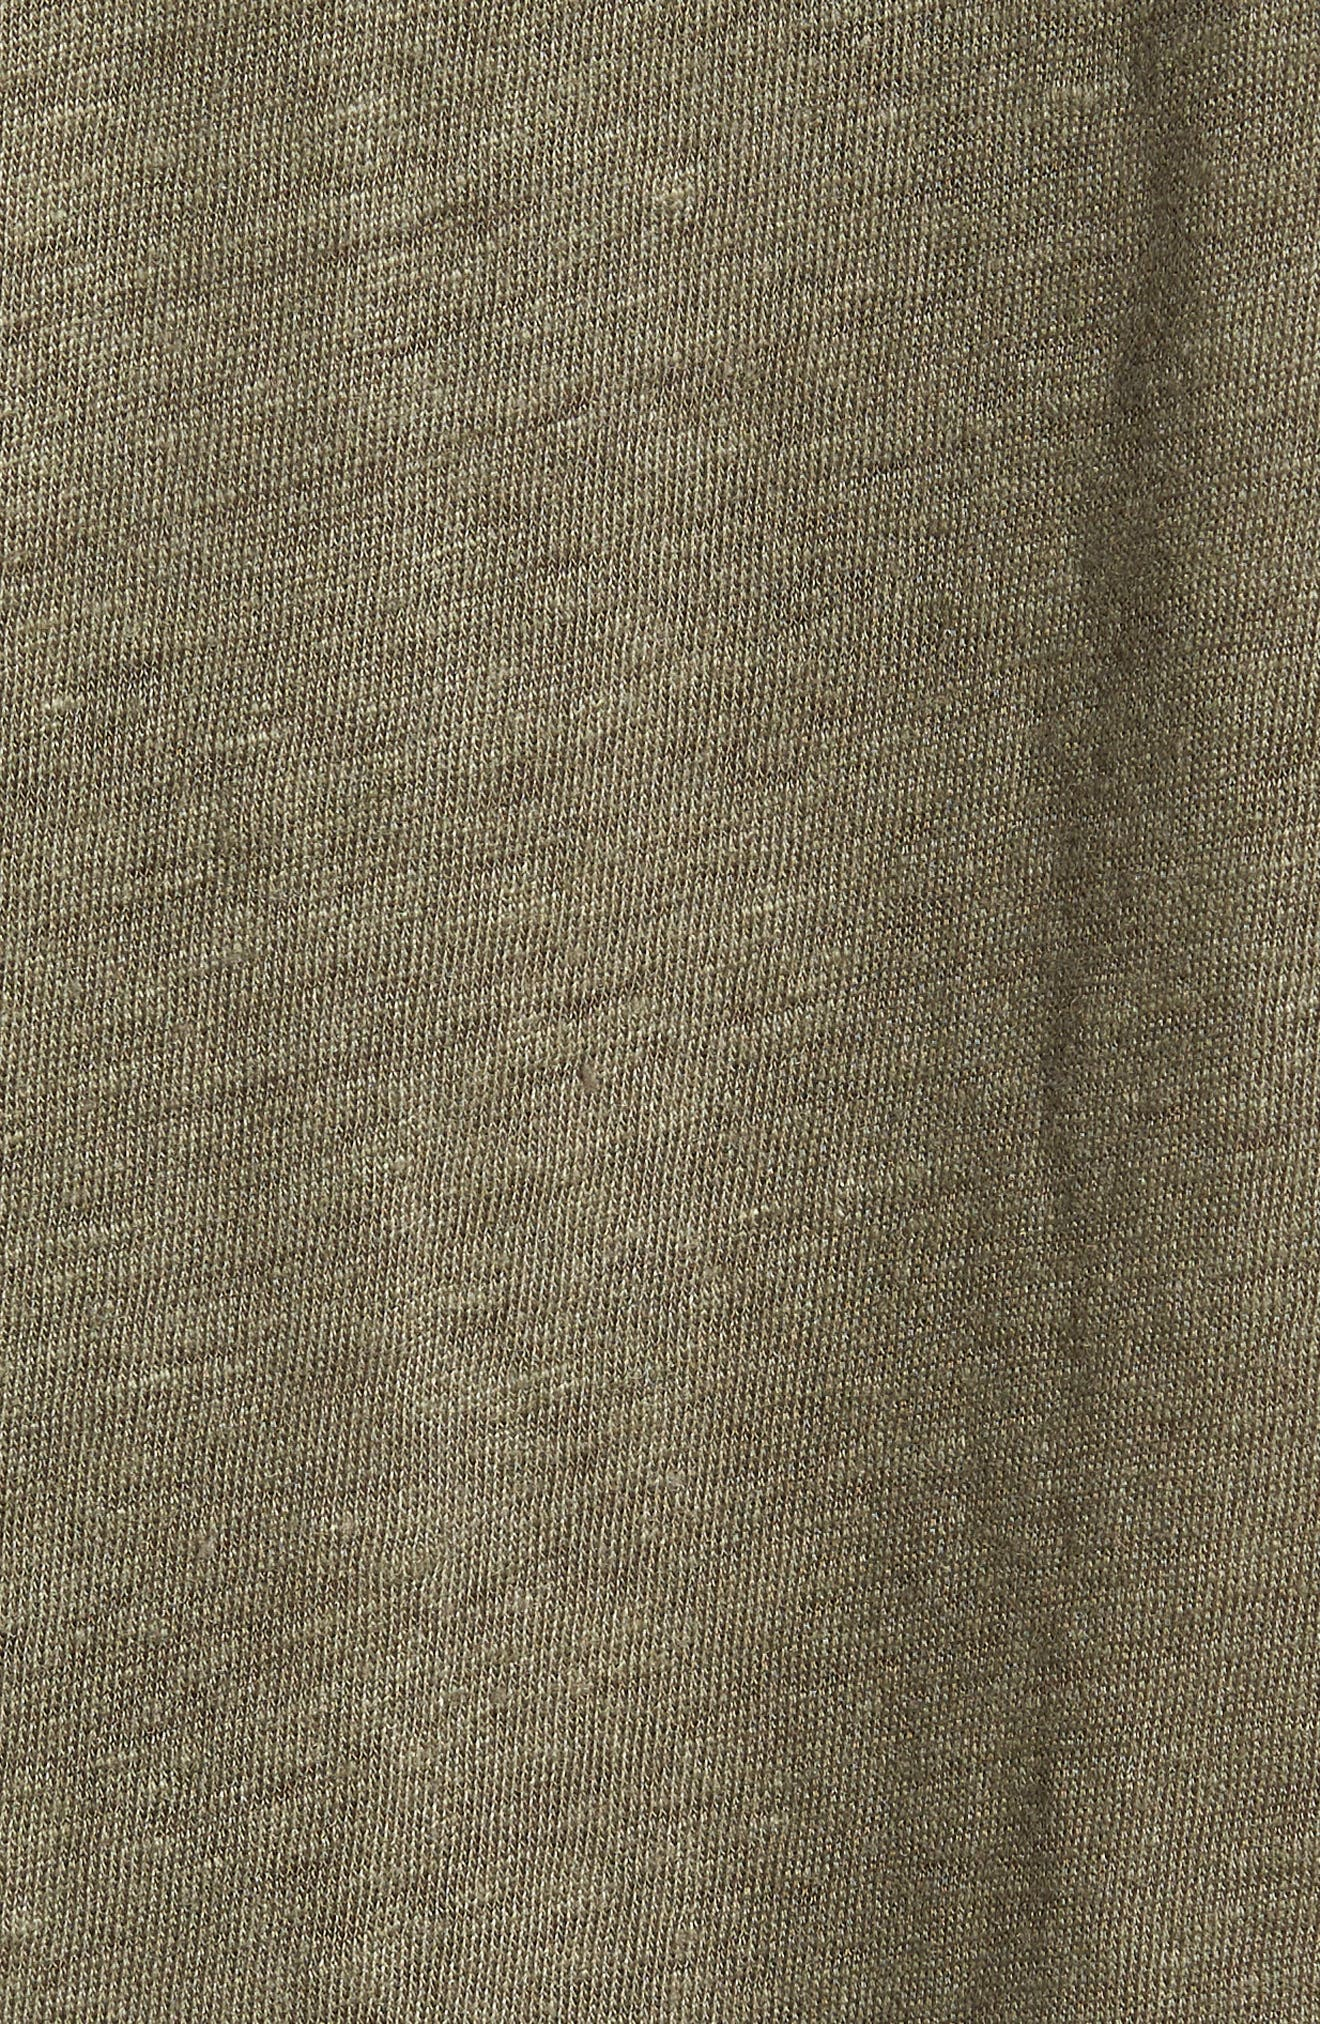 Garrett Linen T-Shirt,                             Alternate thumbnail 5, color,                             SAGE